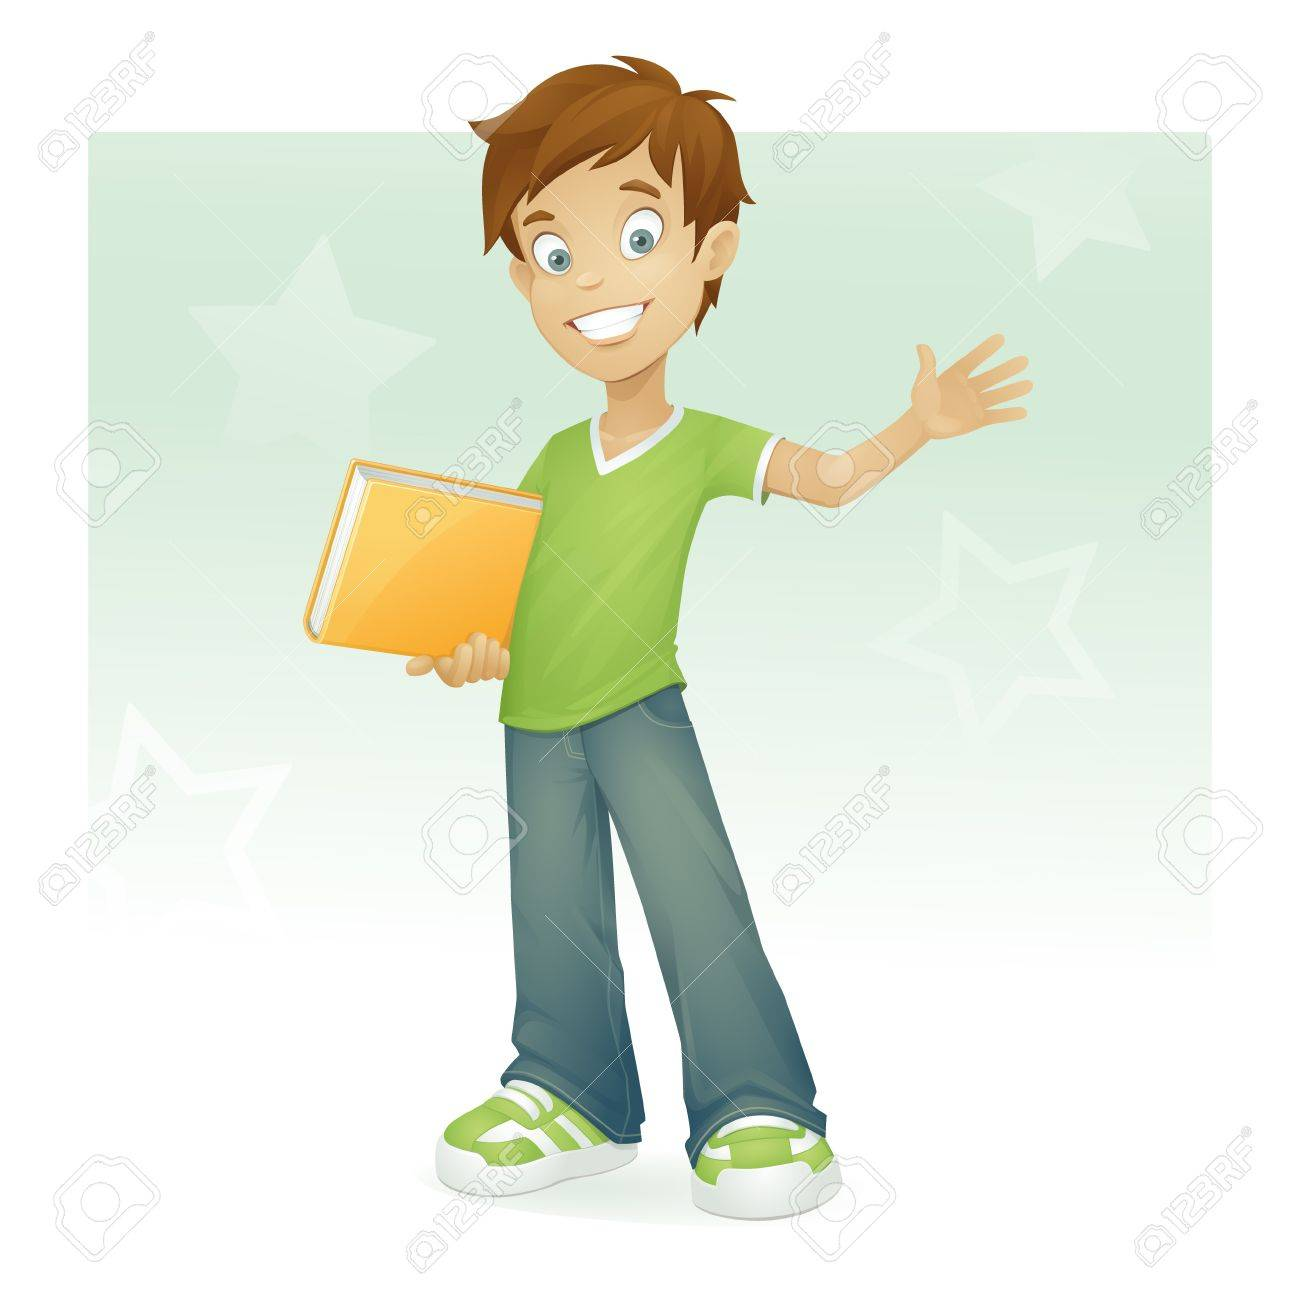 happy boy with book smiling and waving Stock Vector - 9955627